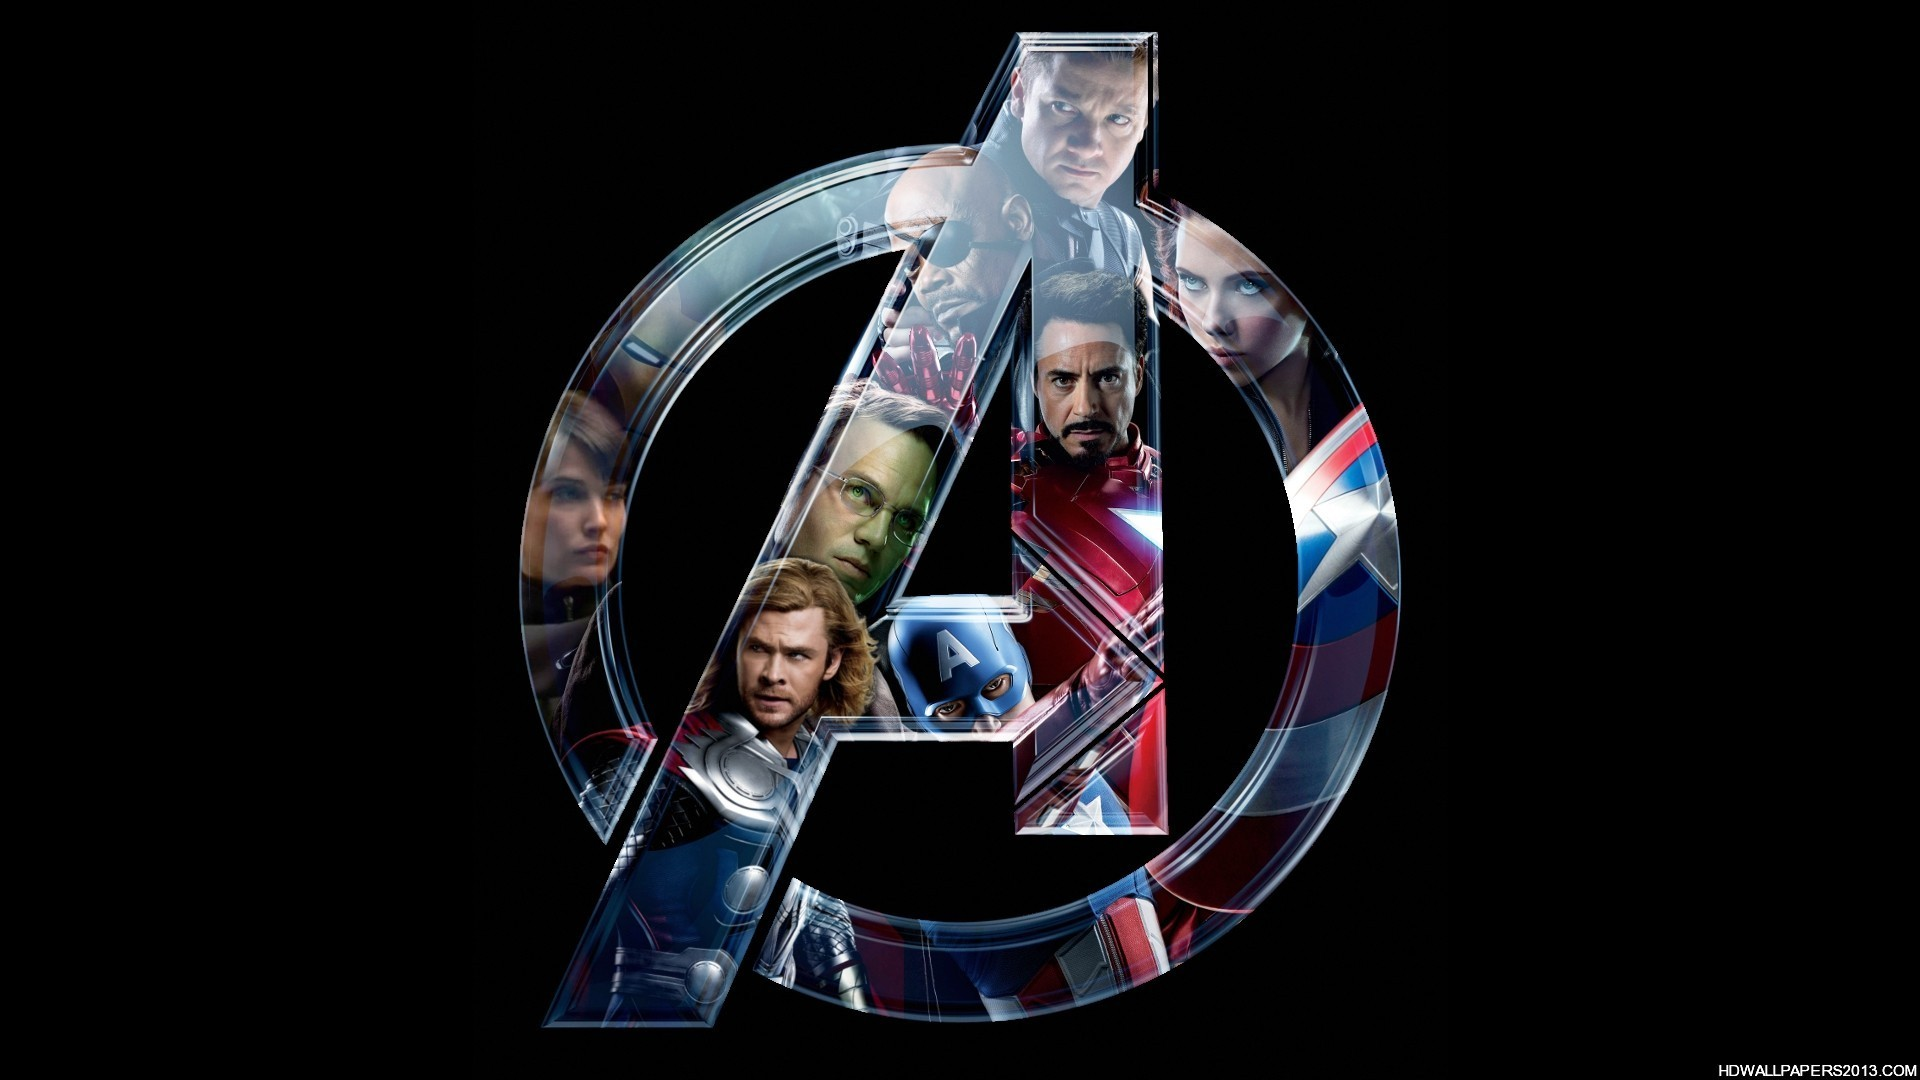 ... glimpses of all the characters from the avengers assemble film such as